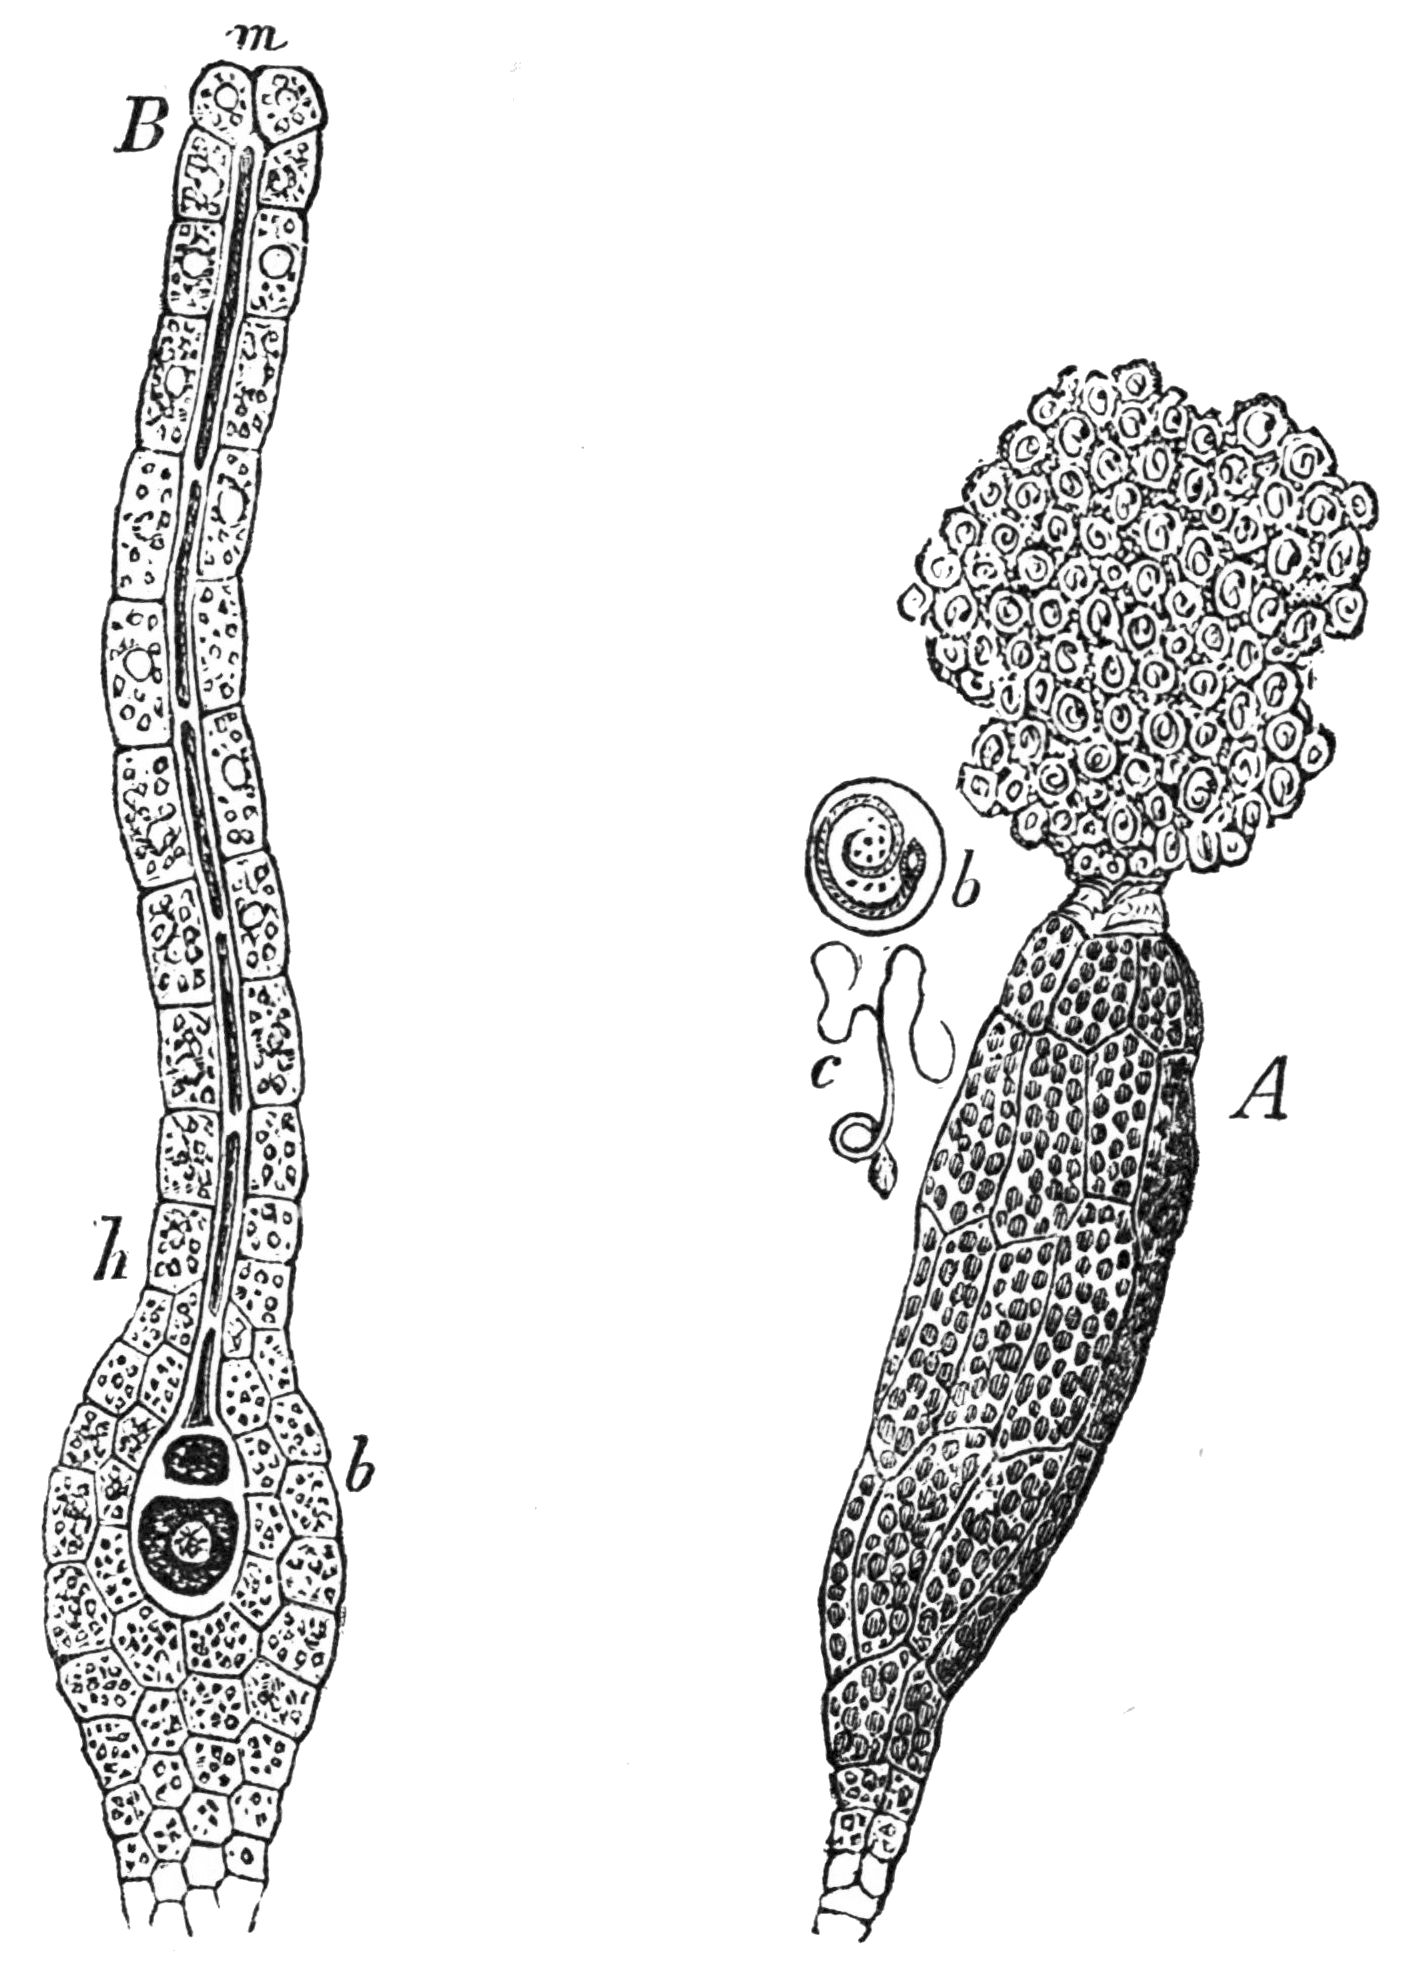 reproductive organs of funaria hygrometrica.jpg Magnified reproductive organs of funaria hygrometrica Date 1884 Source Popular Science Monthly Volume